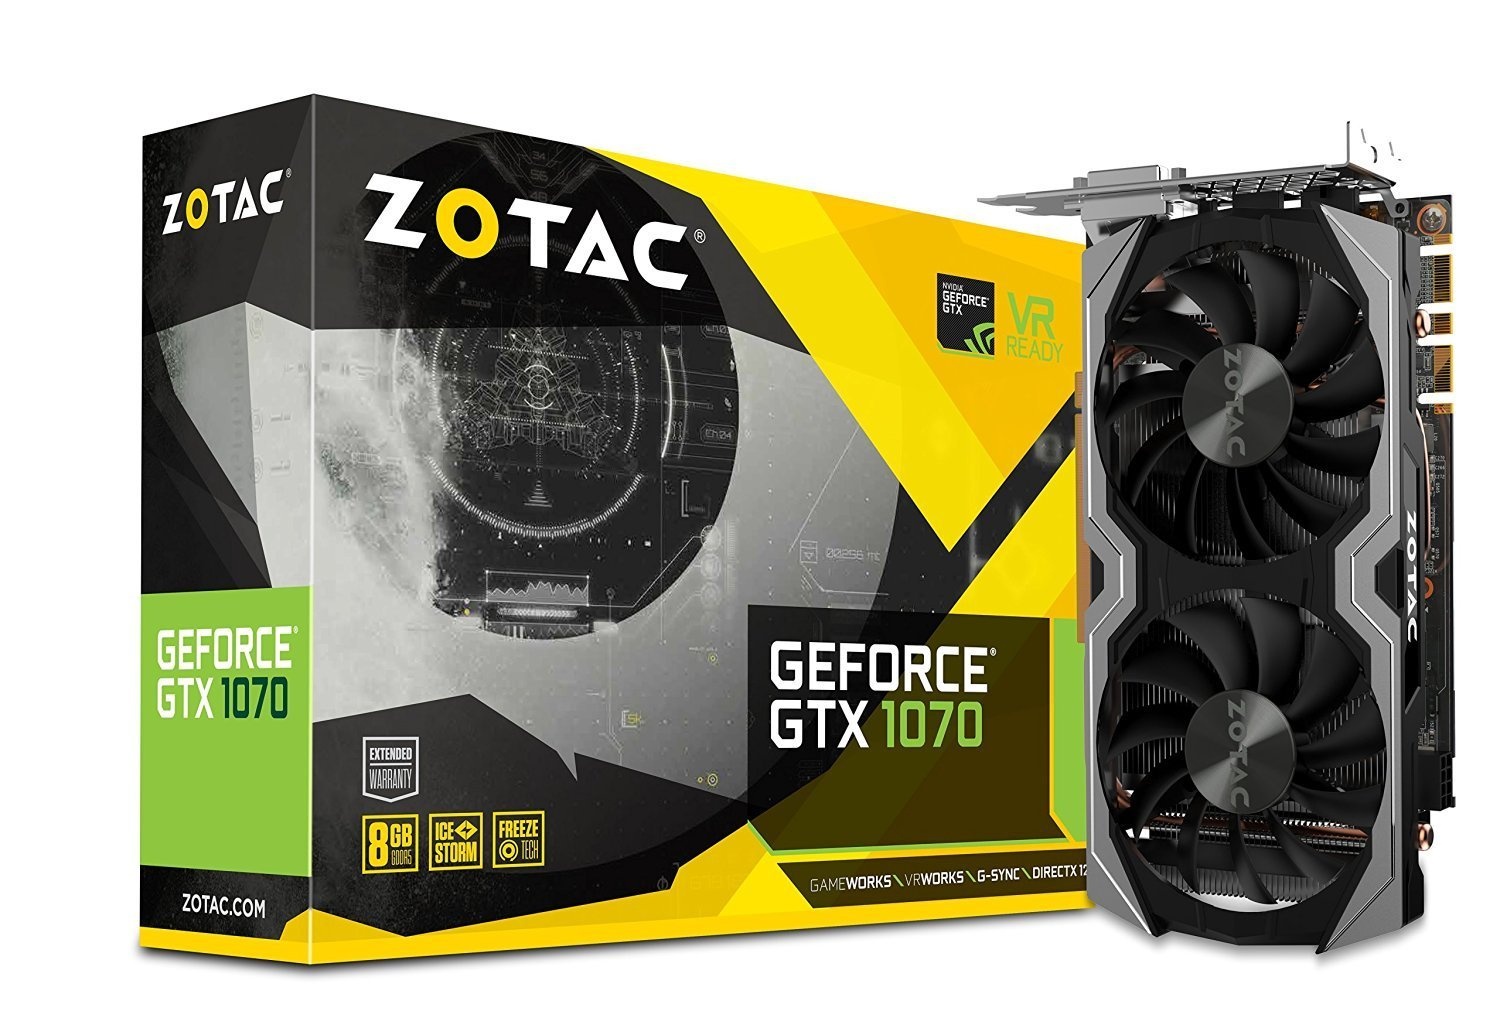 ZOTAC GeForce GTX 1070 Mini 8GB VR Ready Graphics Card |ZT-P10700G-10M